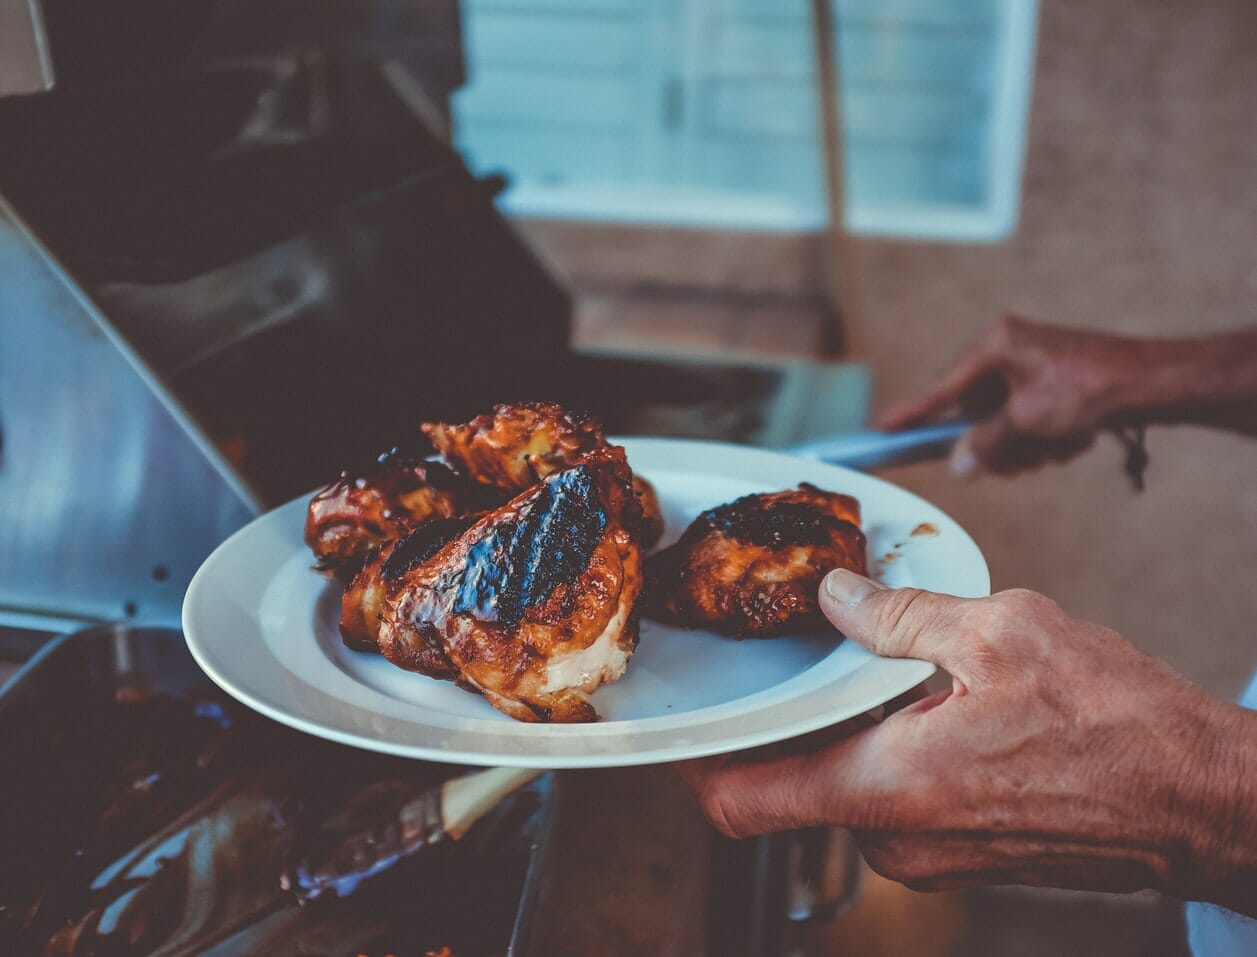 Meat Rubs Are an Easy Way to Make the Most of Grilled Meats